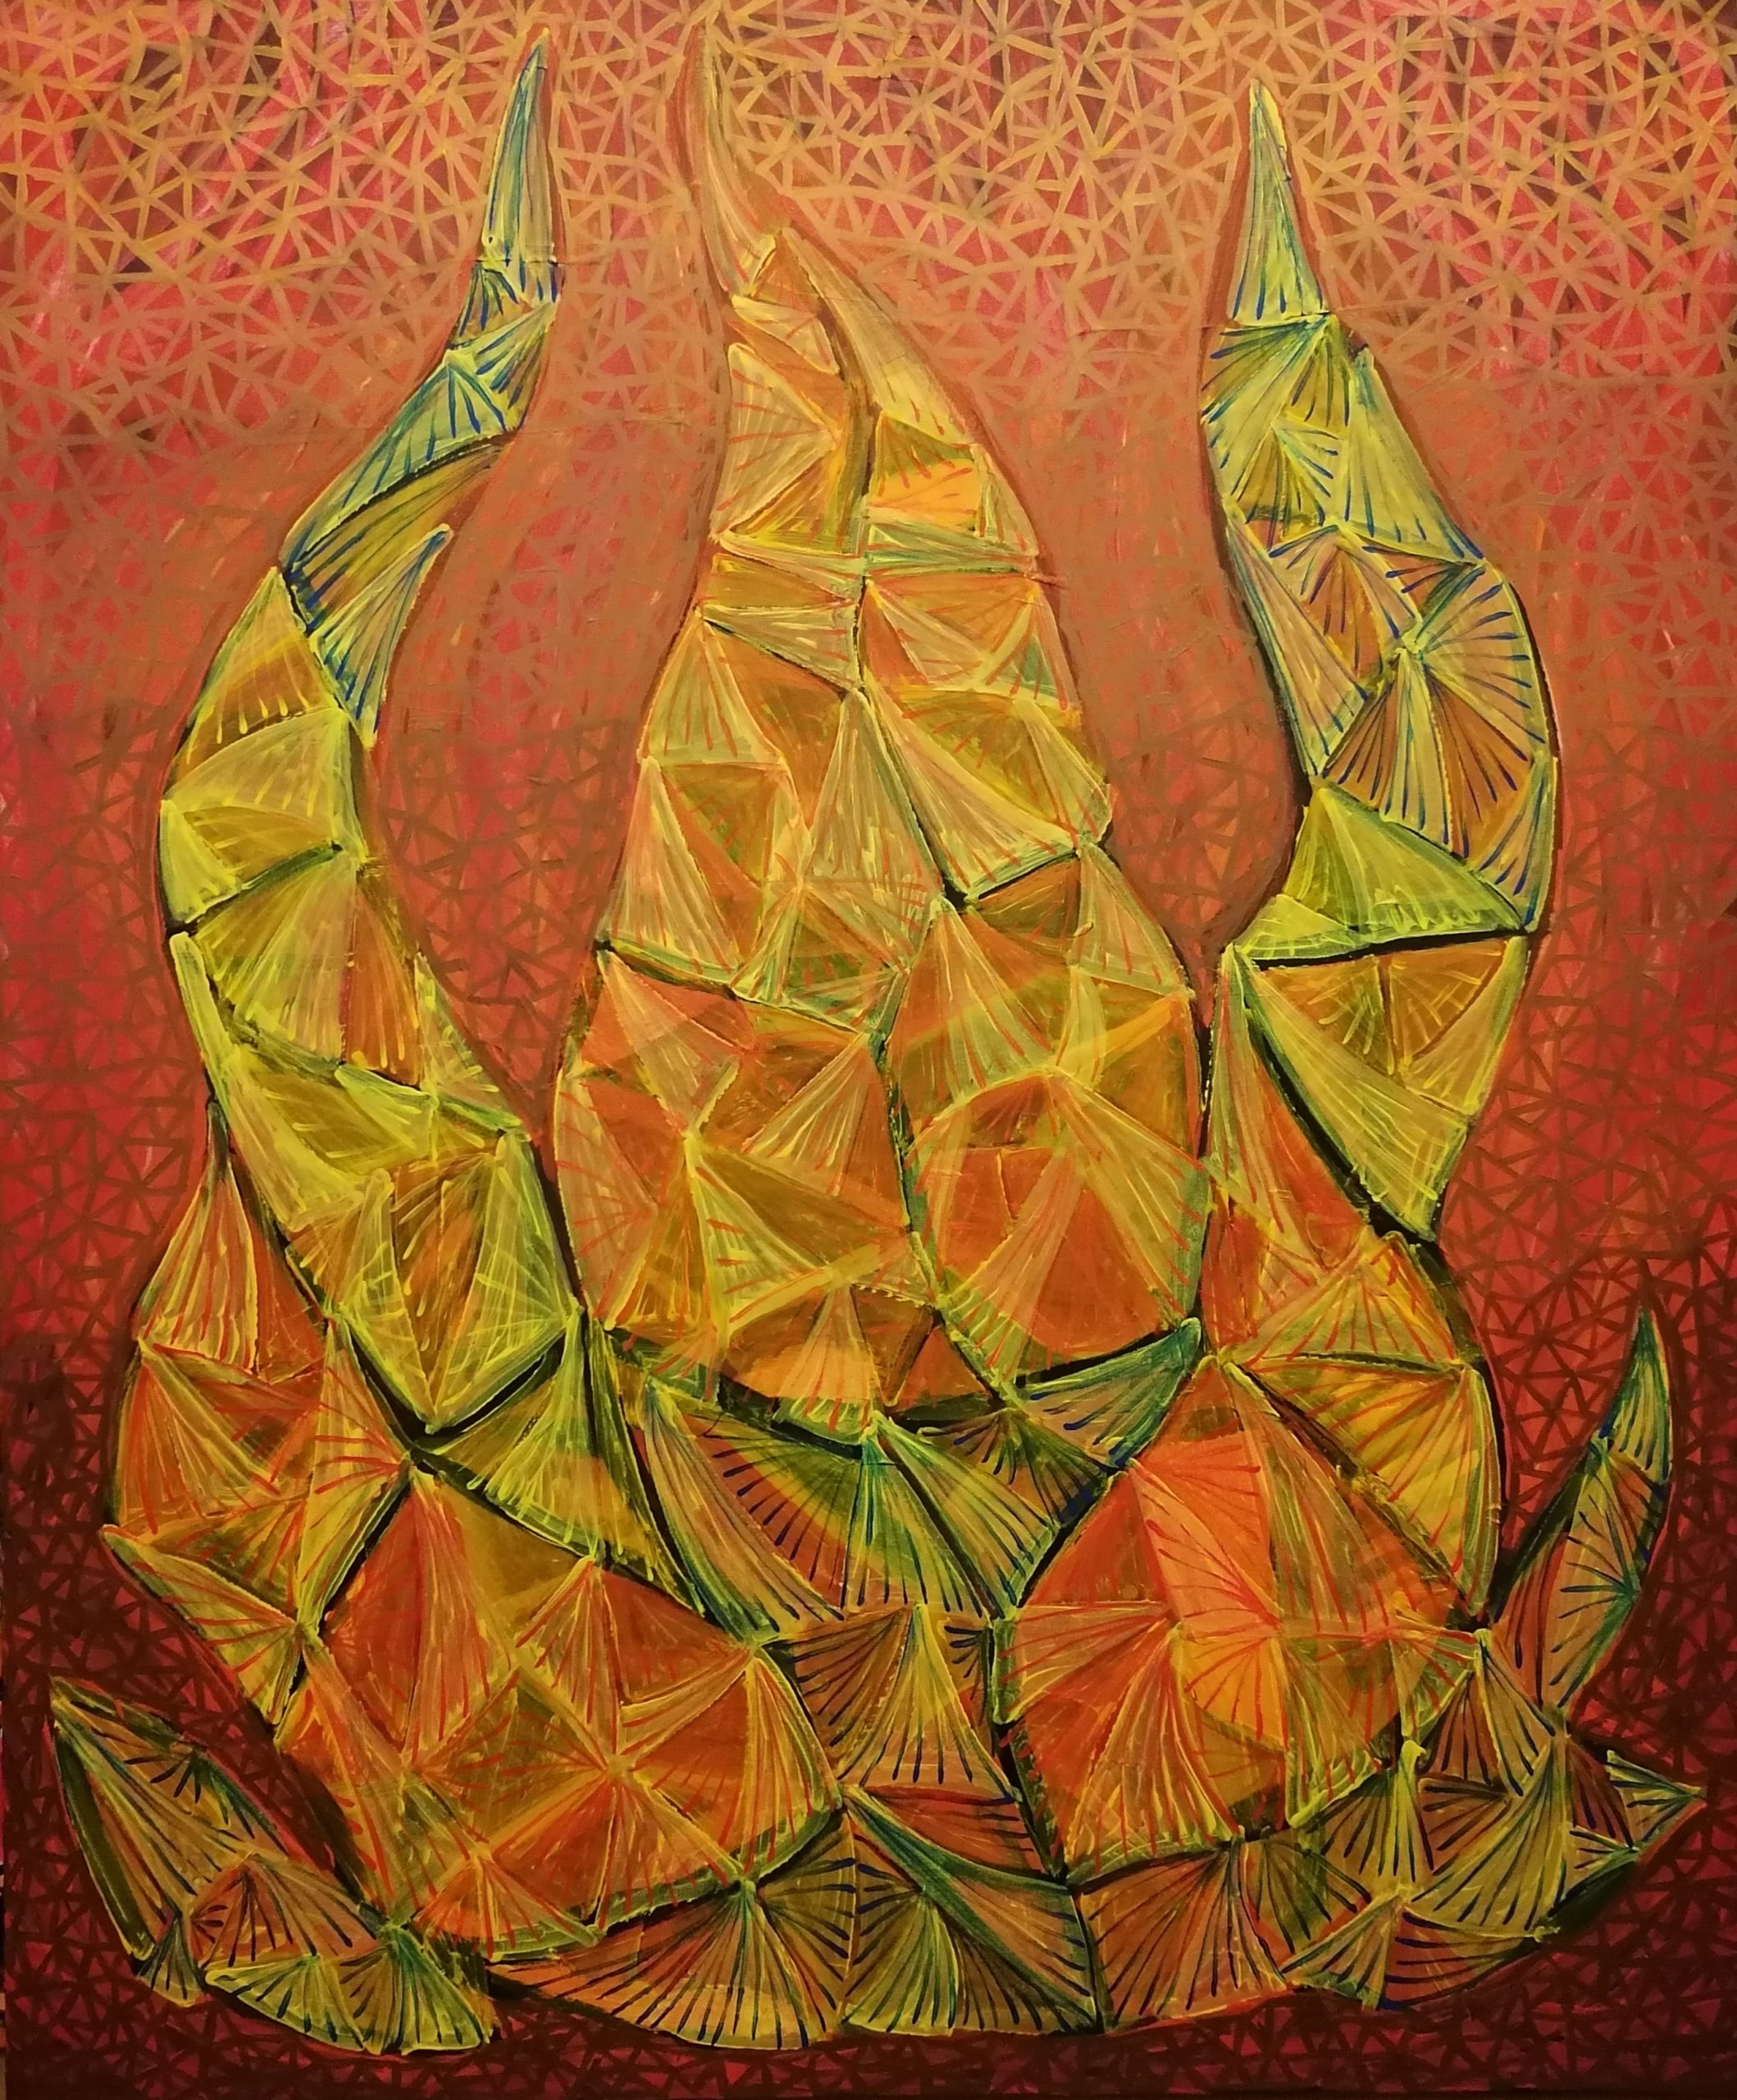 SOULFIRE'S FLAMES (M. Sager, 2021. Acrylic on canvas, 100 x 120 cm)